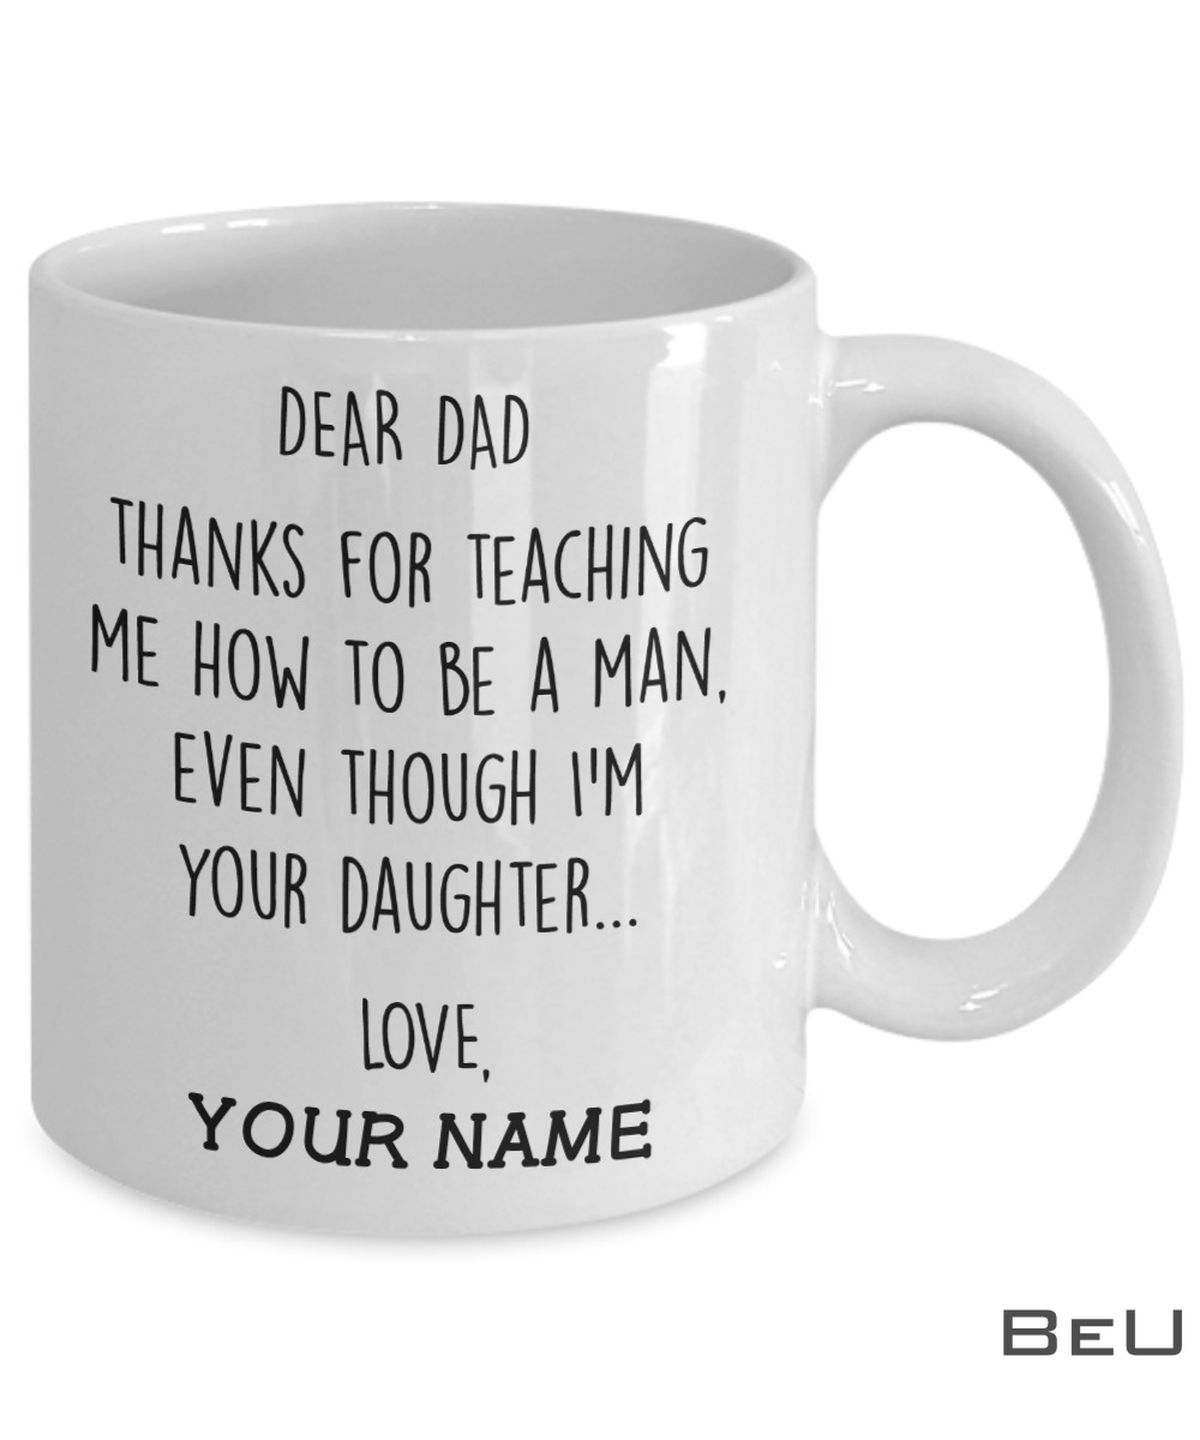 Personalized Dear Dad Thanks For Teaching Me How To Be A Man Even Though I'm Your Daughter Mug